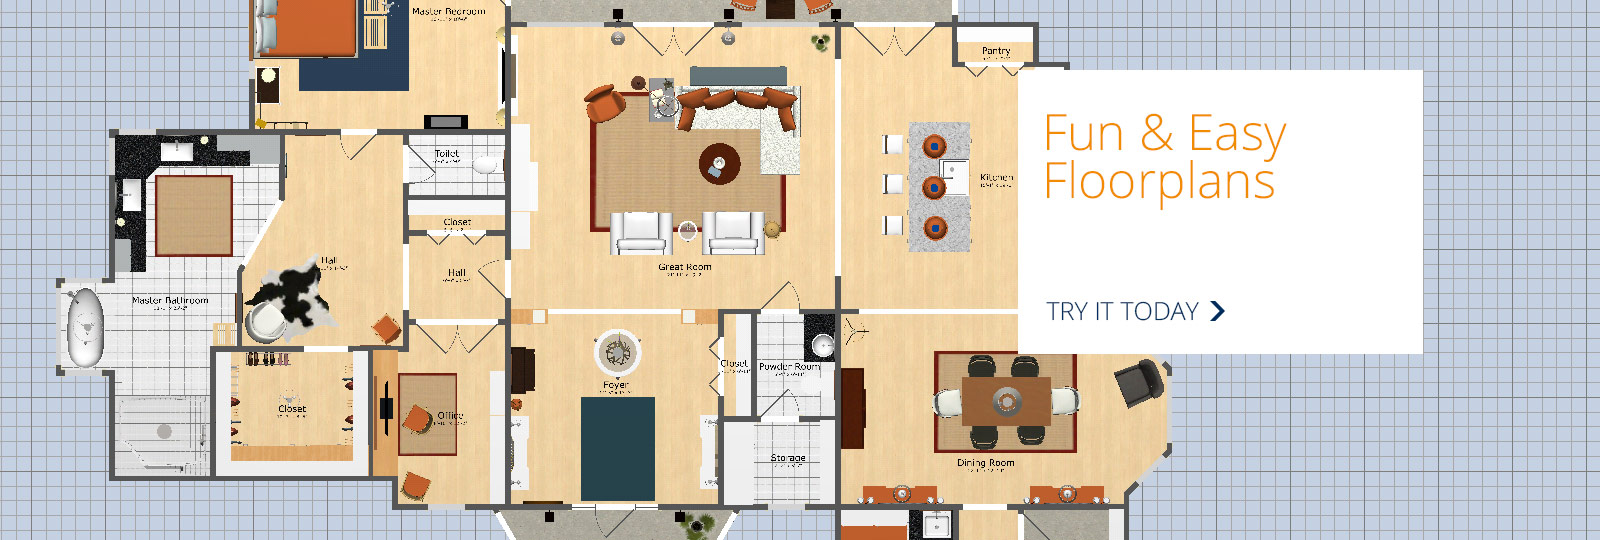 Fun and Easy Floorplans